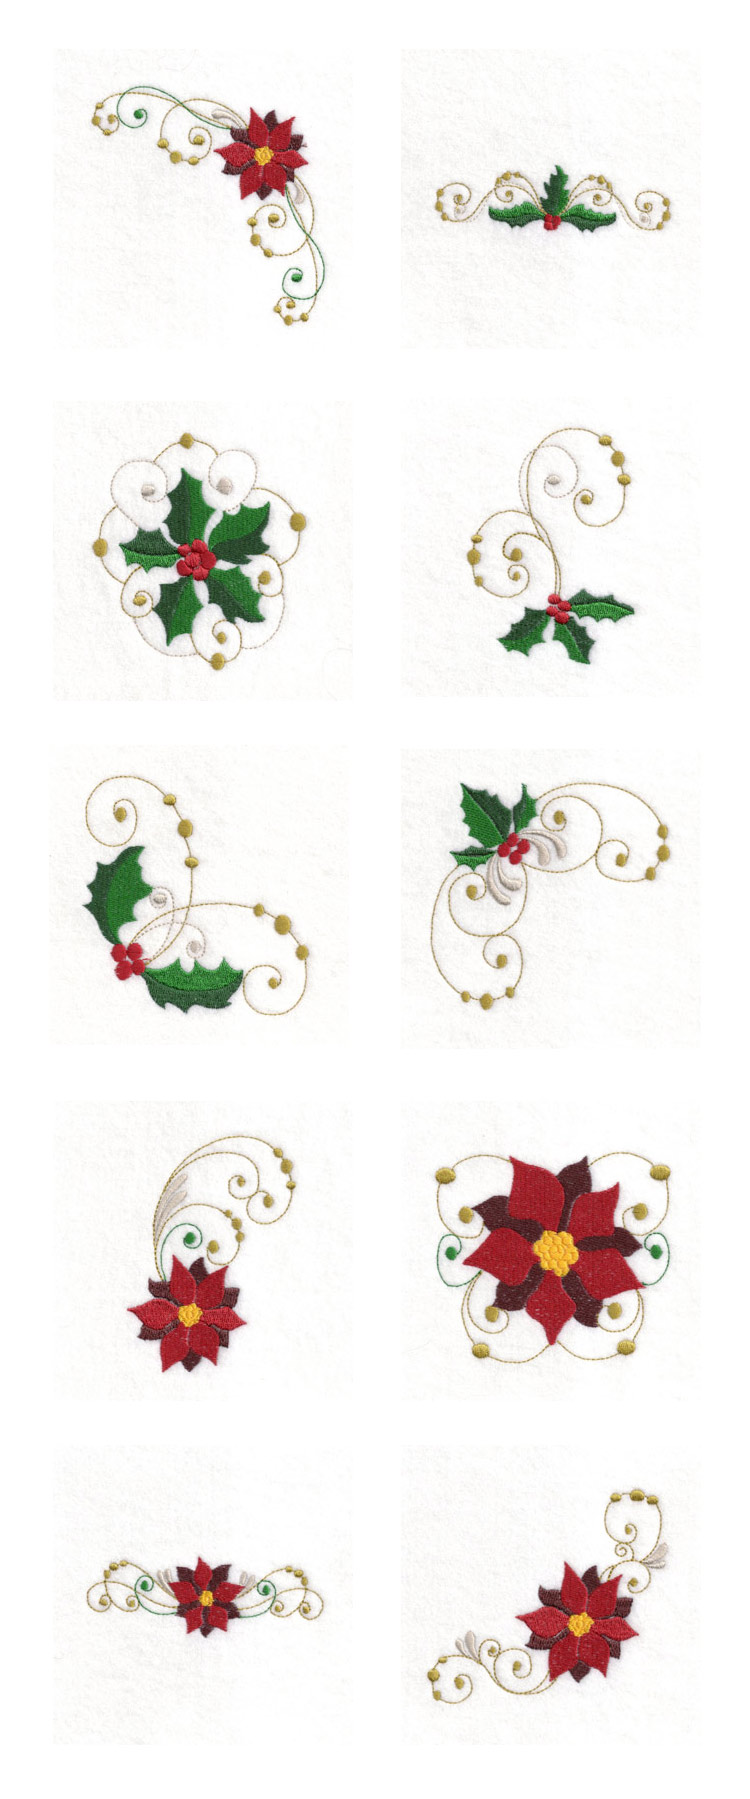 Deck the Holly Embroidery Machine Design Details